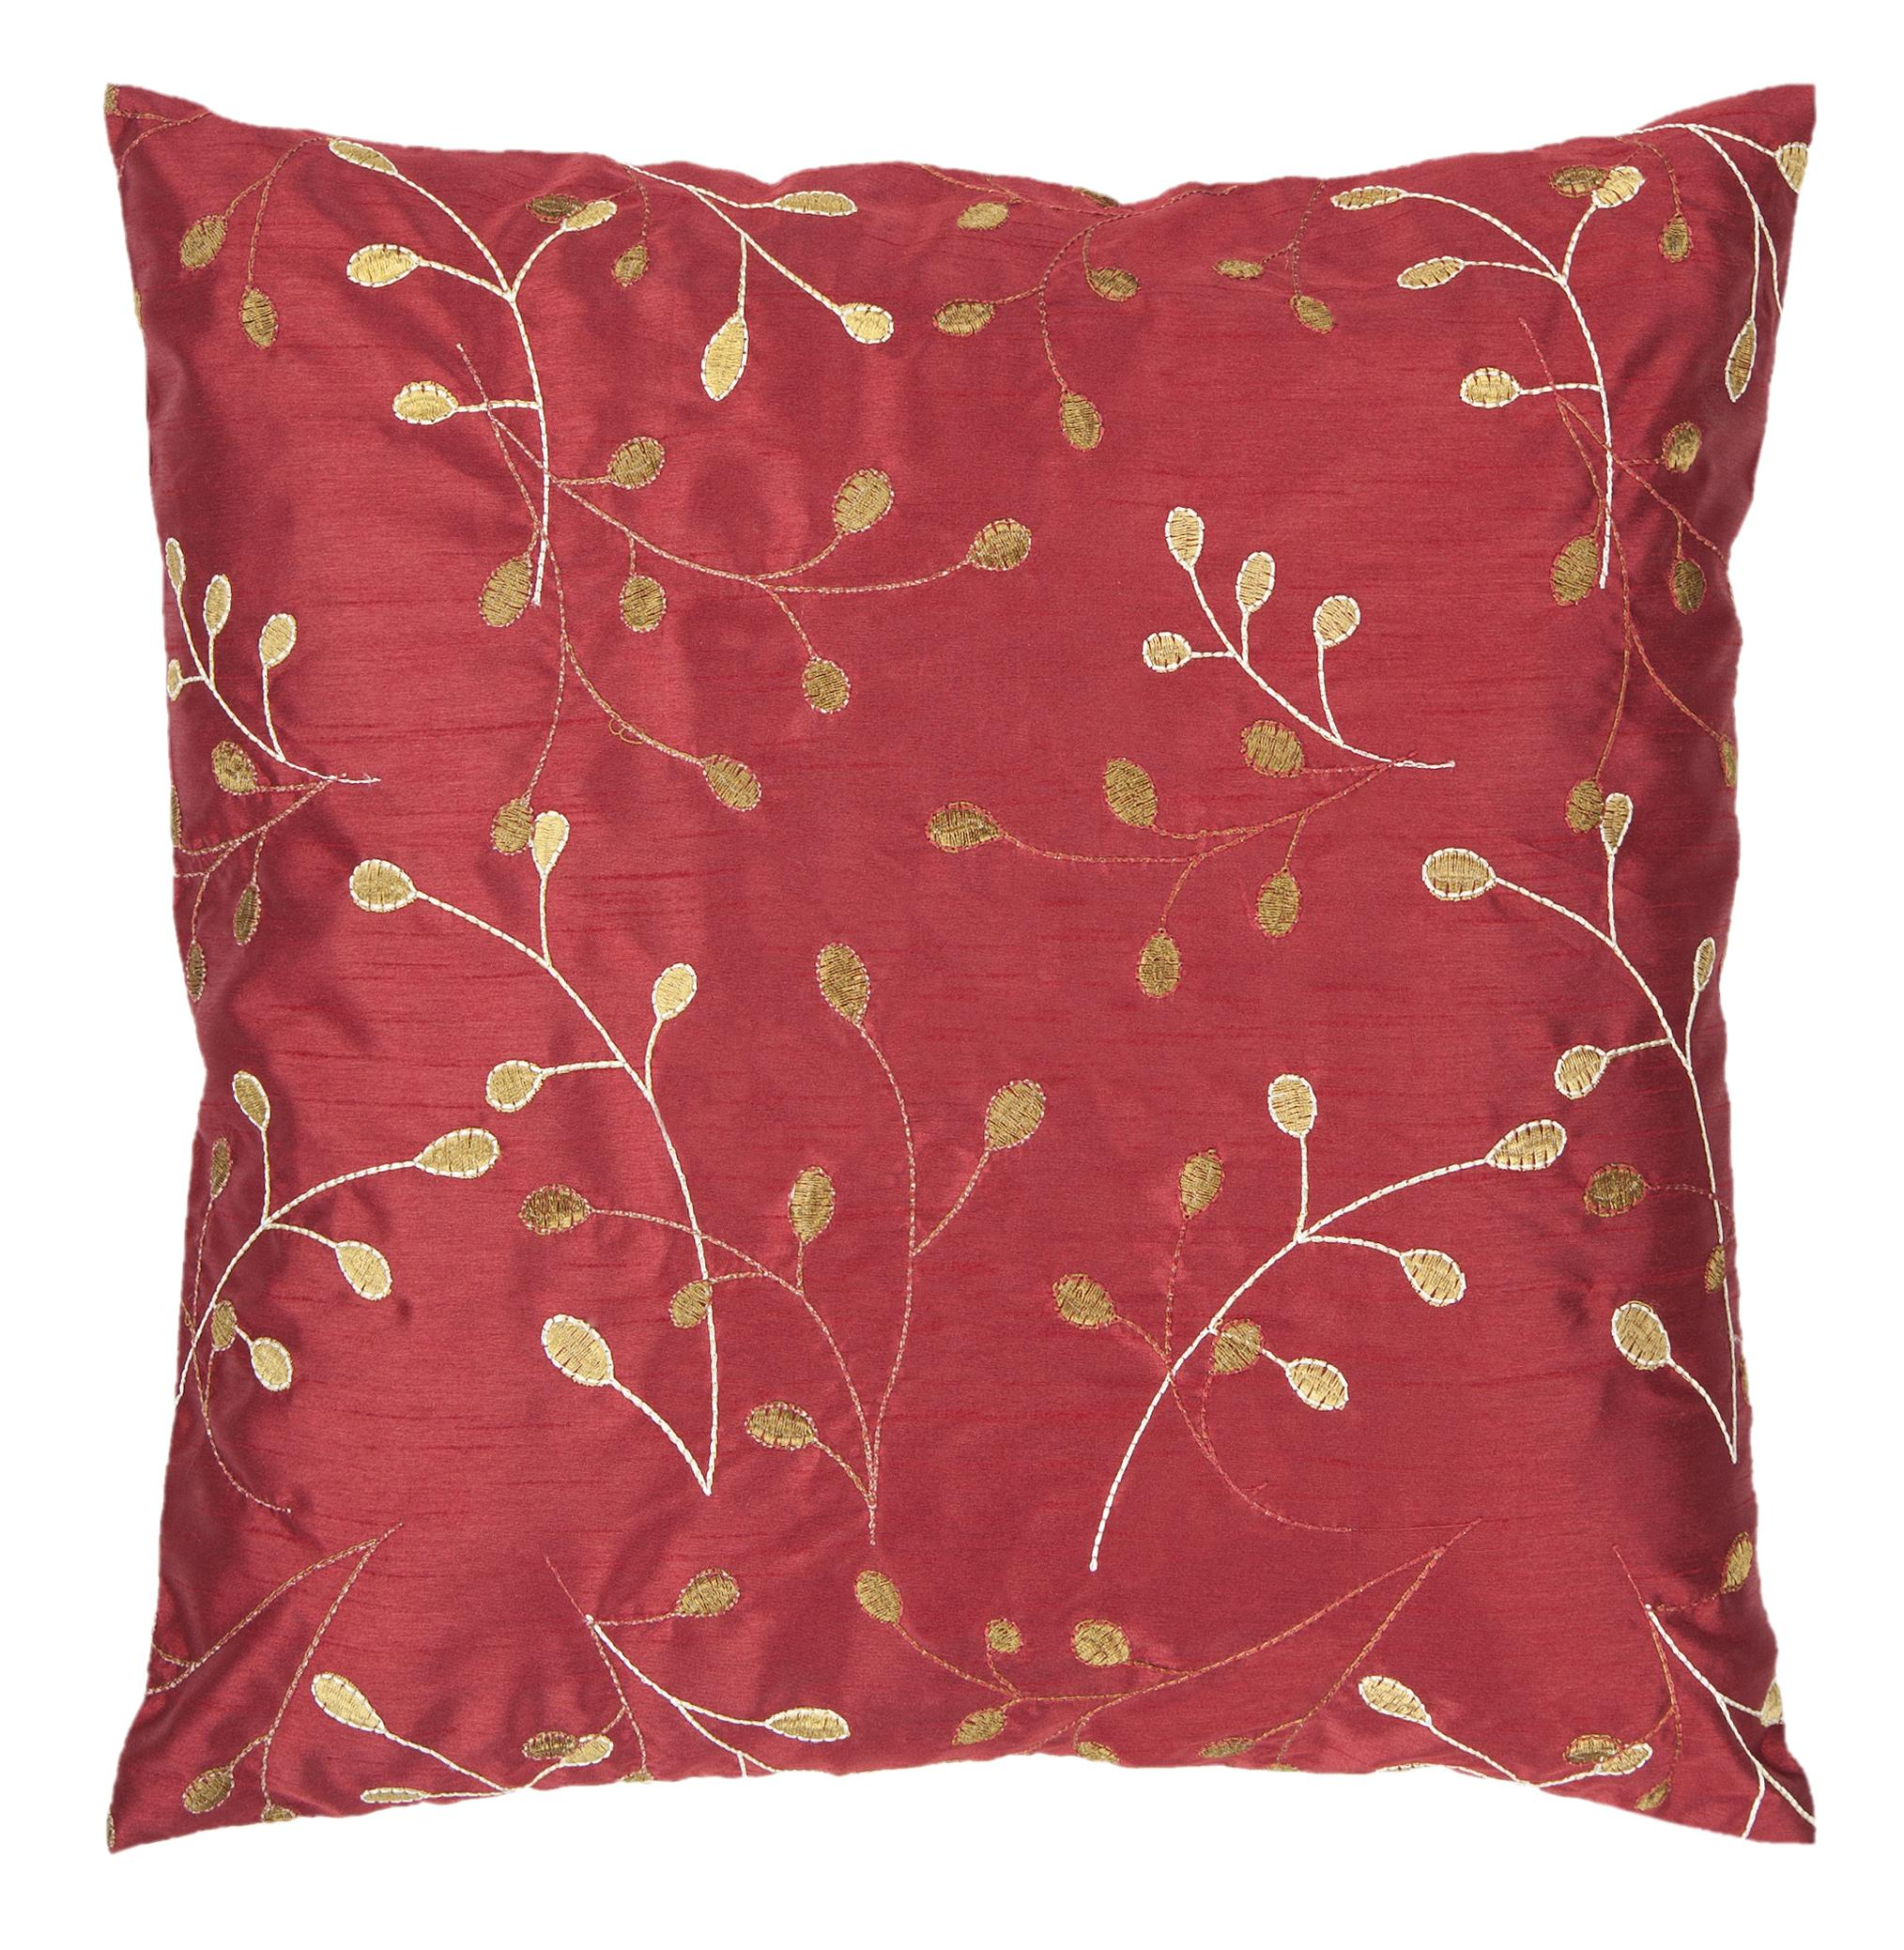 "Surya Pillows 18"" x 18"" Pillow - Item Number: HH093-1818P"